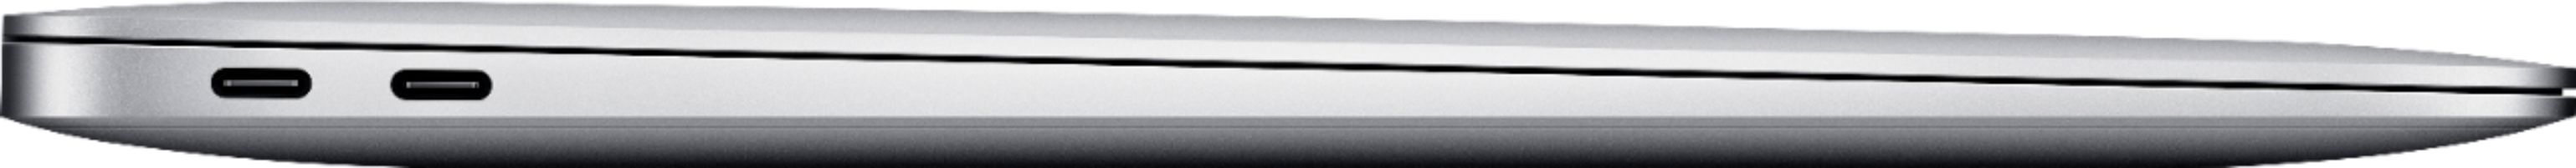 """Alt View Zoom 14. Apple - MacBook Air 13.3"""" Laptop with Touch ID - Intel Core i3 - 8GB Memory - 256GB Solid State Drive - Silver."""